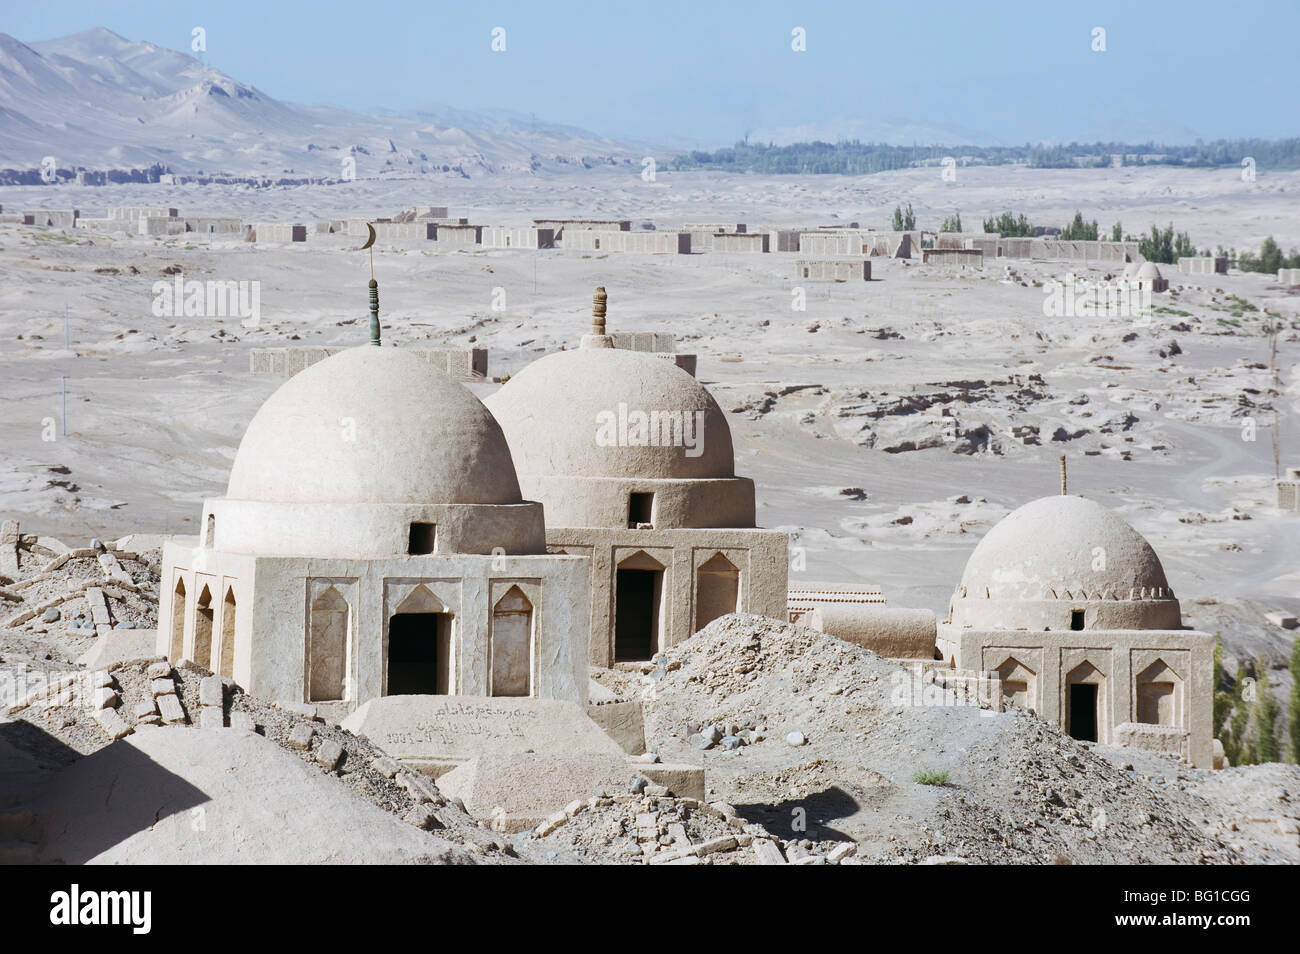 Ruined city of Jiaohe, Turpan on the Silk Route, UNESCO World Heritage Site, Xinjiang Province, China, Asia Stock Photo